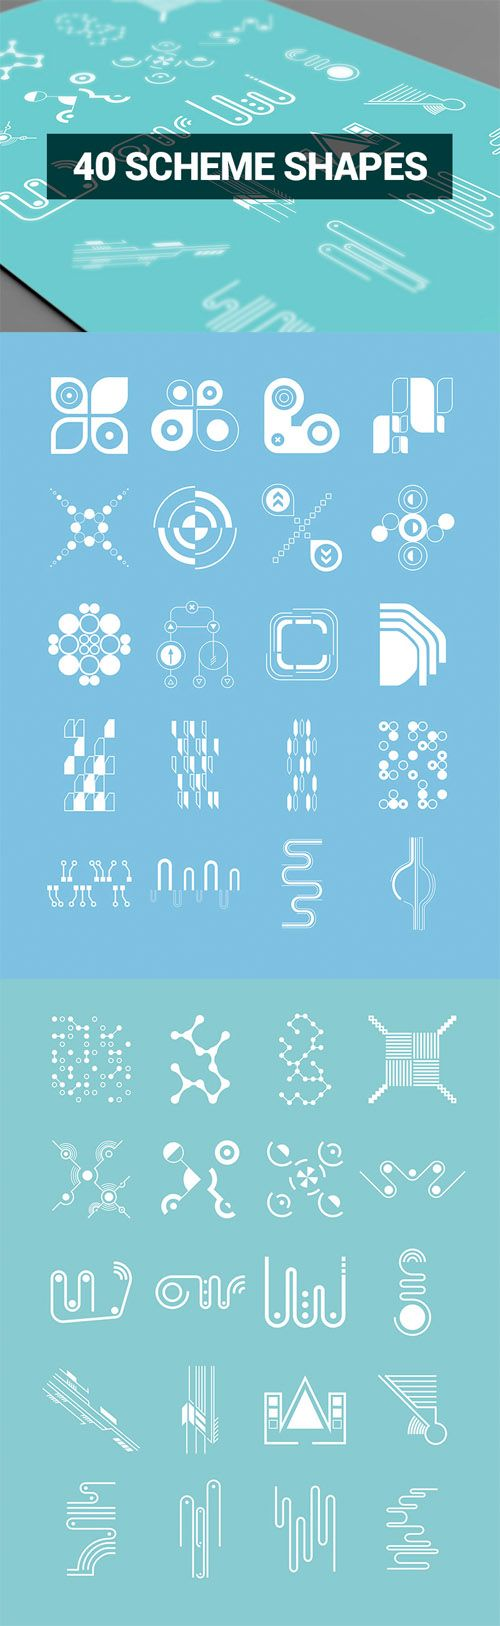 Vector Abstract Shapes – 40 Scheme Shapes » Vector, PSD Templates, Stock Images, After Effects, Fonts, Web Design, Indesign